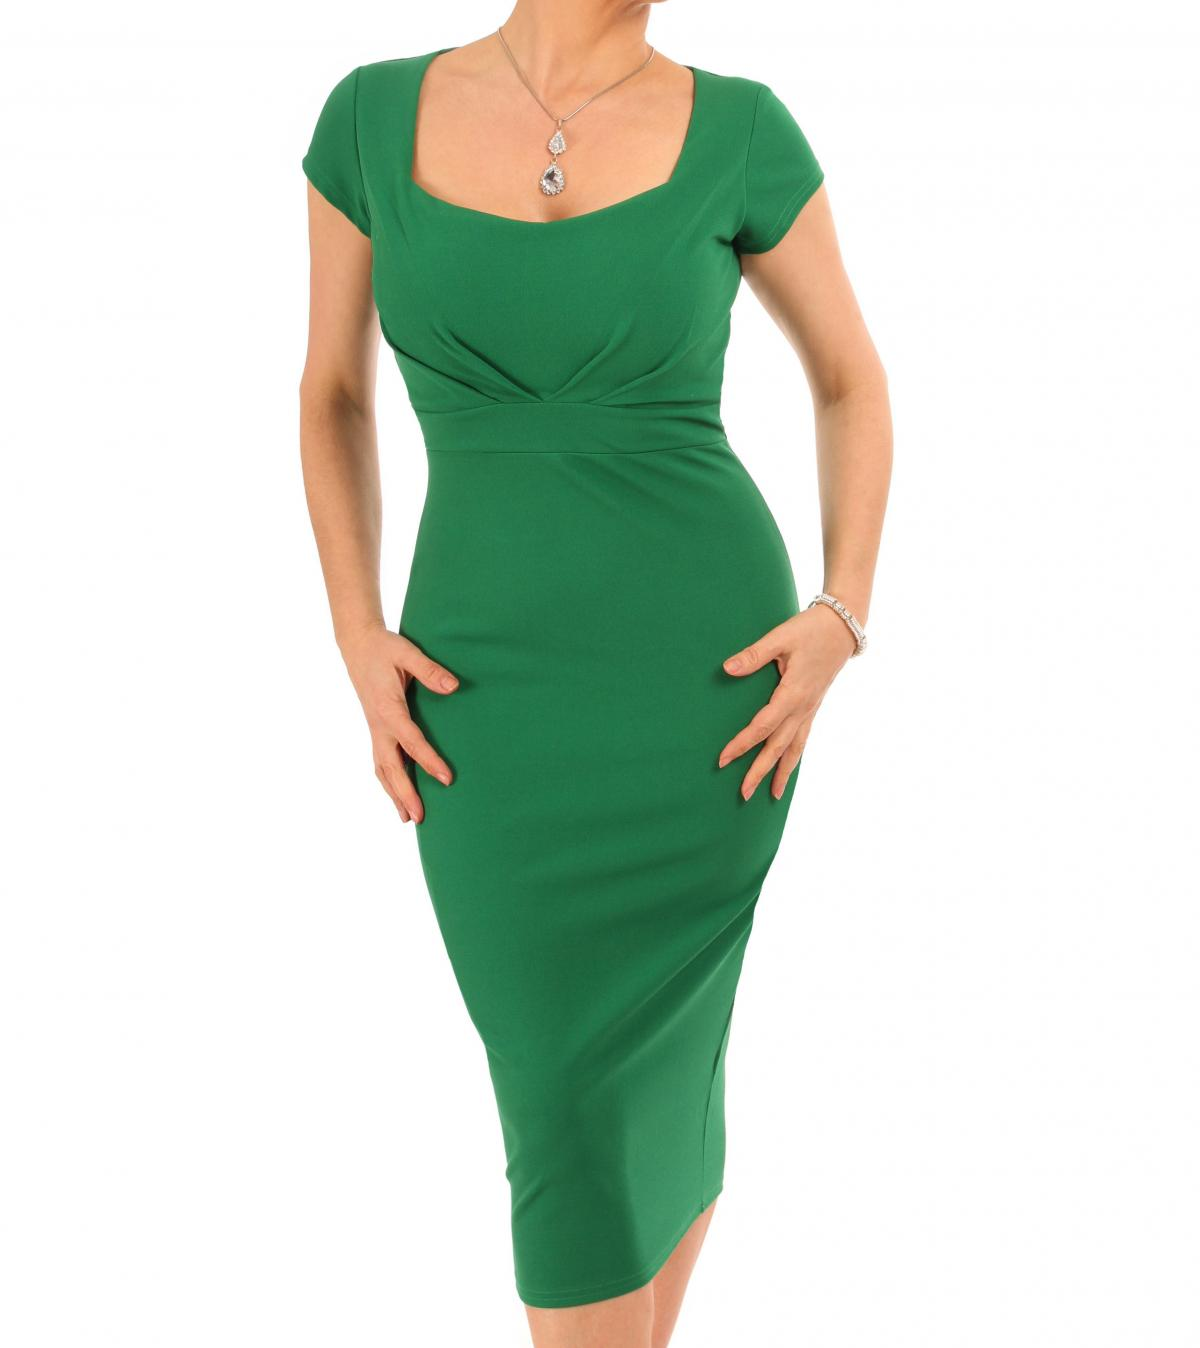 Emerald Green Pleat Detail Midi Dress